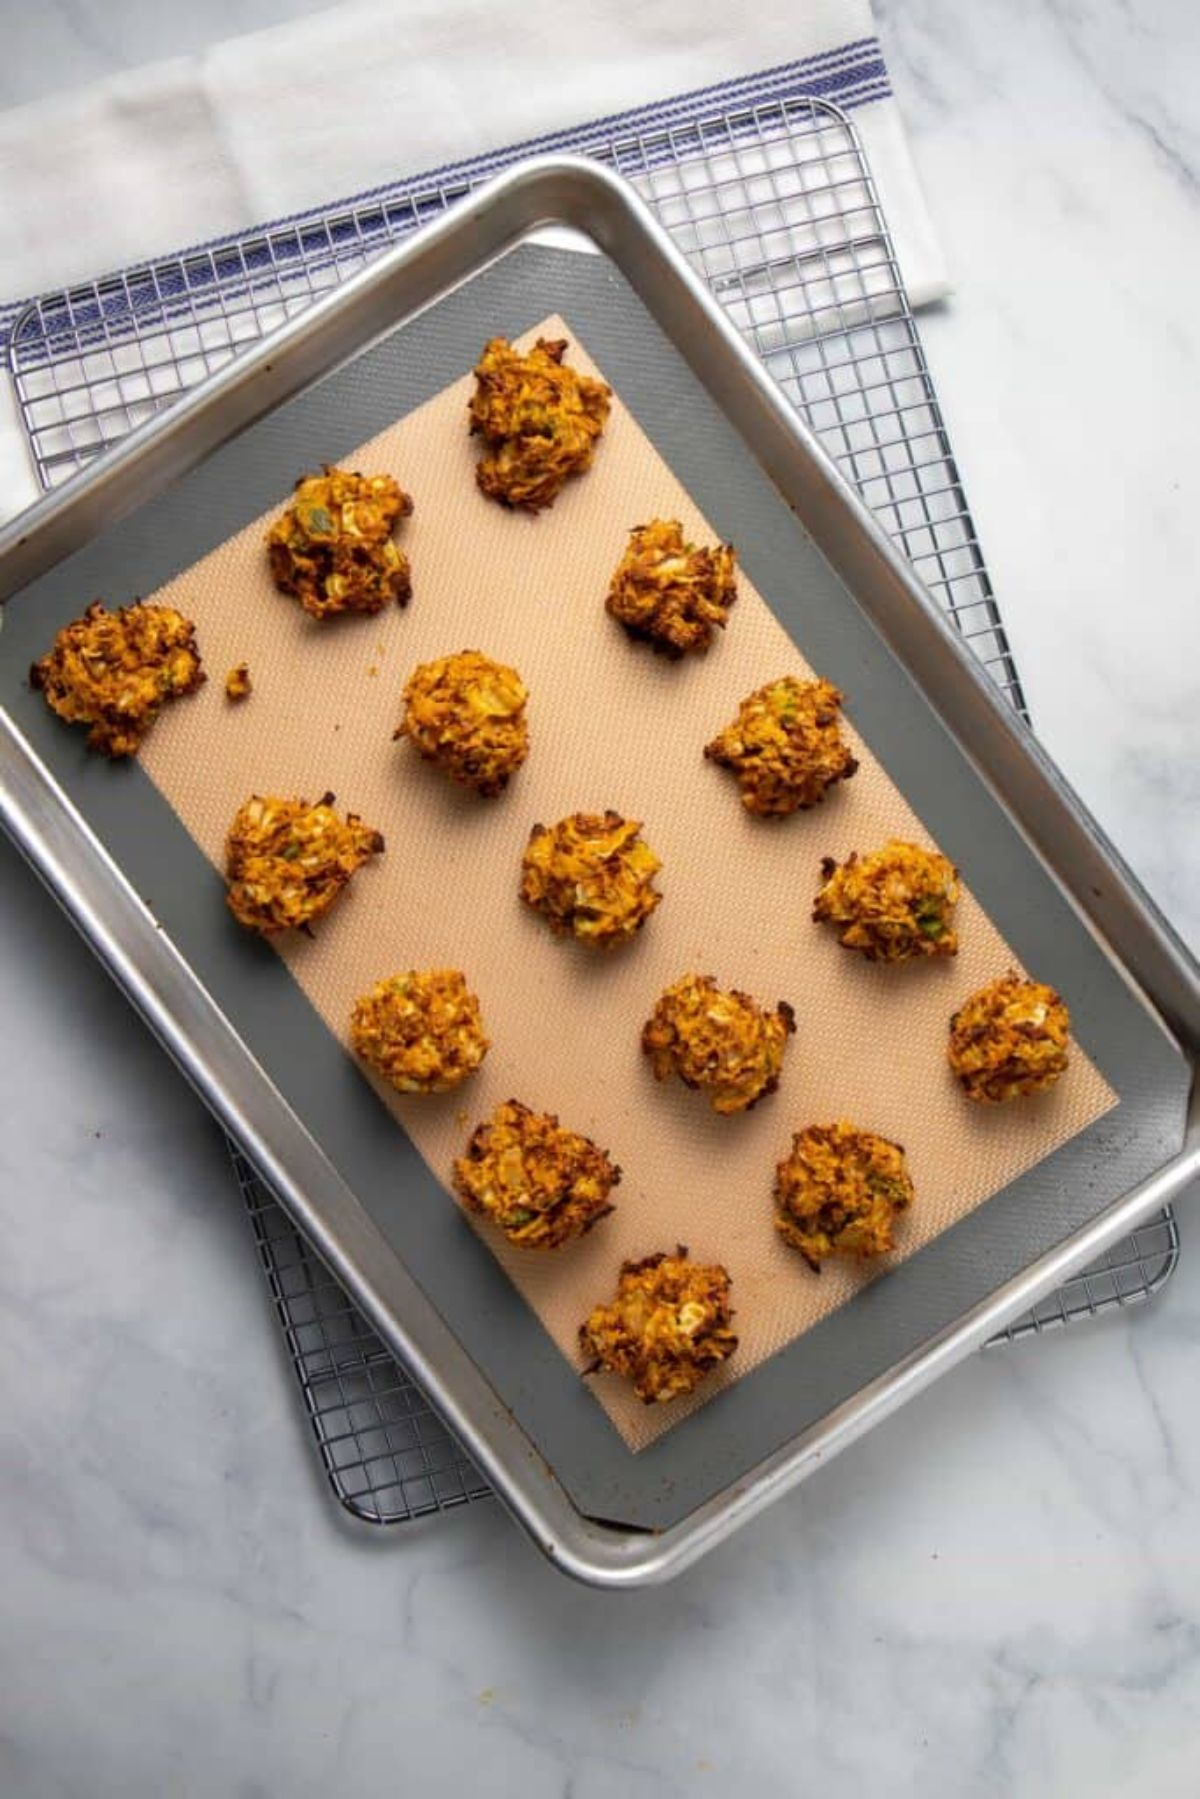 a top view of a baking tray with cabbage fritters laid out on it